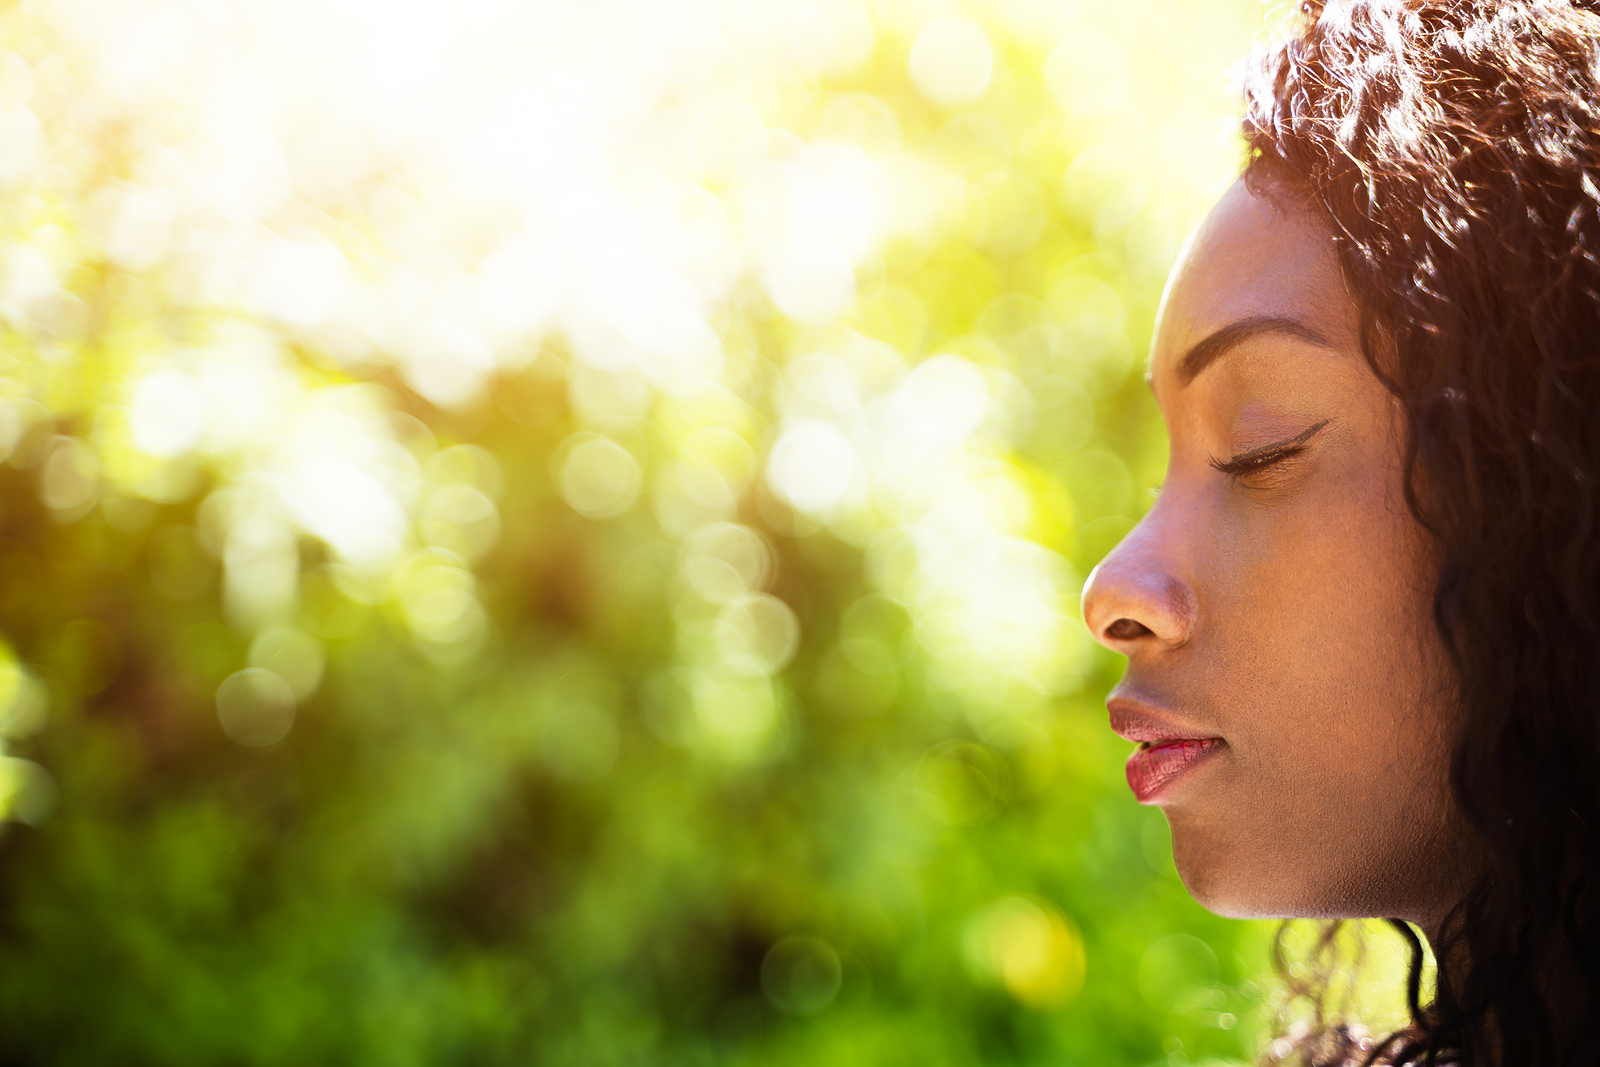 Close up of black woman outside breathing deeply. When you're struggling with being in the present moment, ACT therapy can help you feel grounded. Begin in-person or online therapy in Michigan for Acceptance and Commitment in Detroit, MI. Call now!